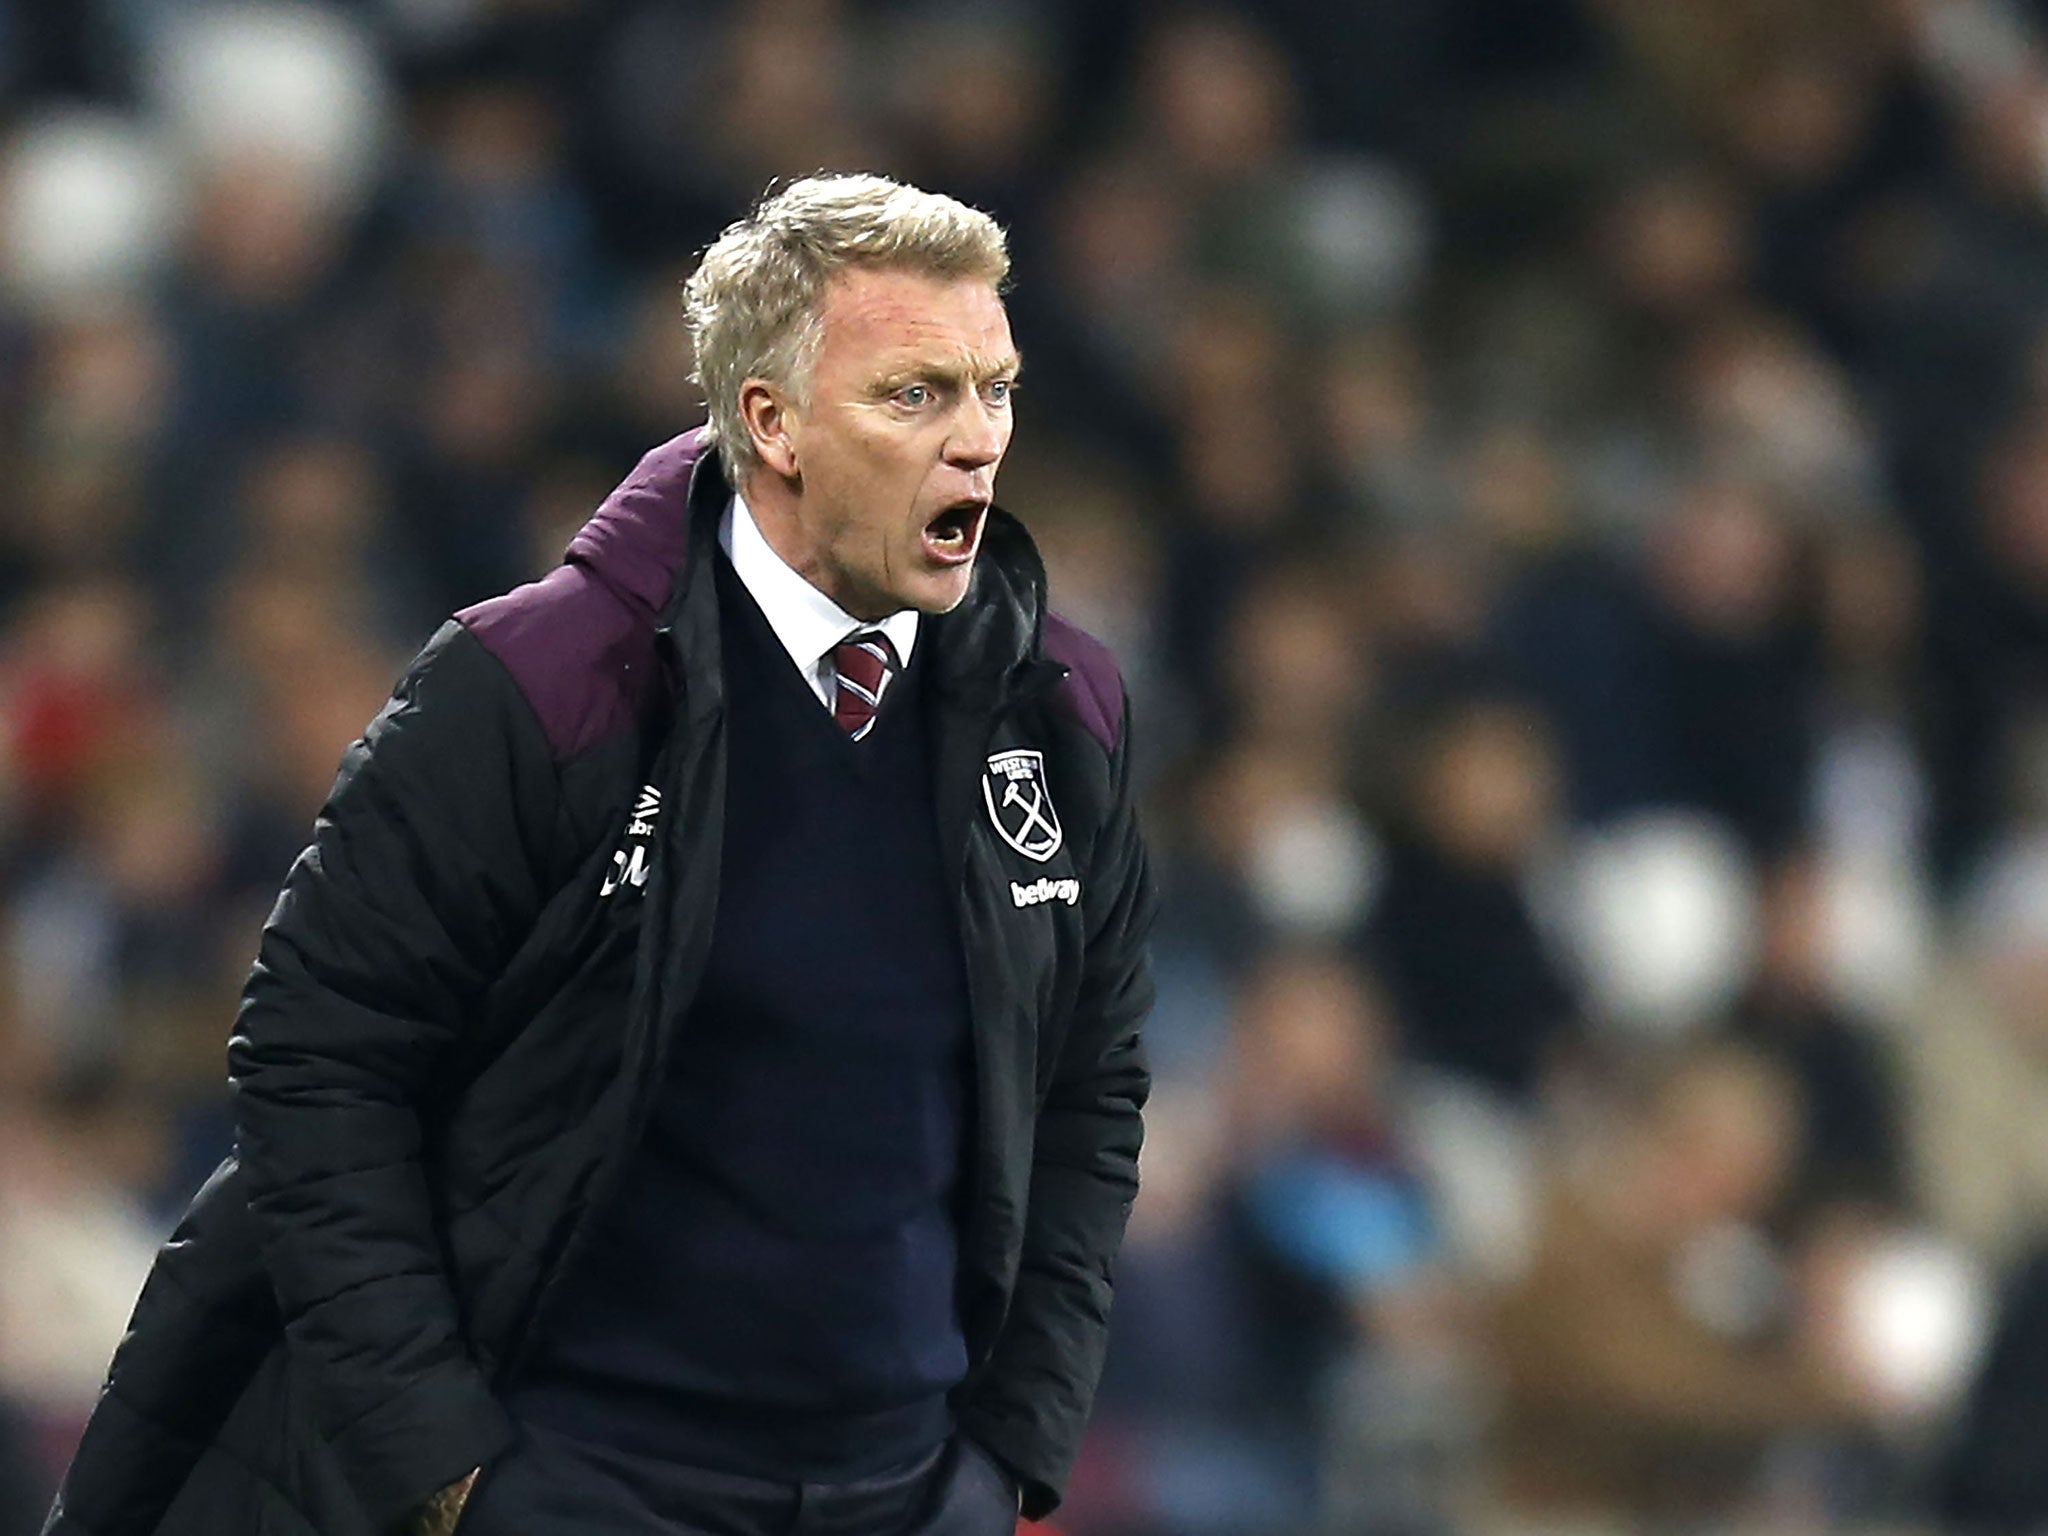 David Moyes praises spirited West Ham and home fans after draw with Leicester